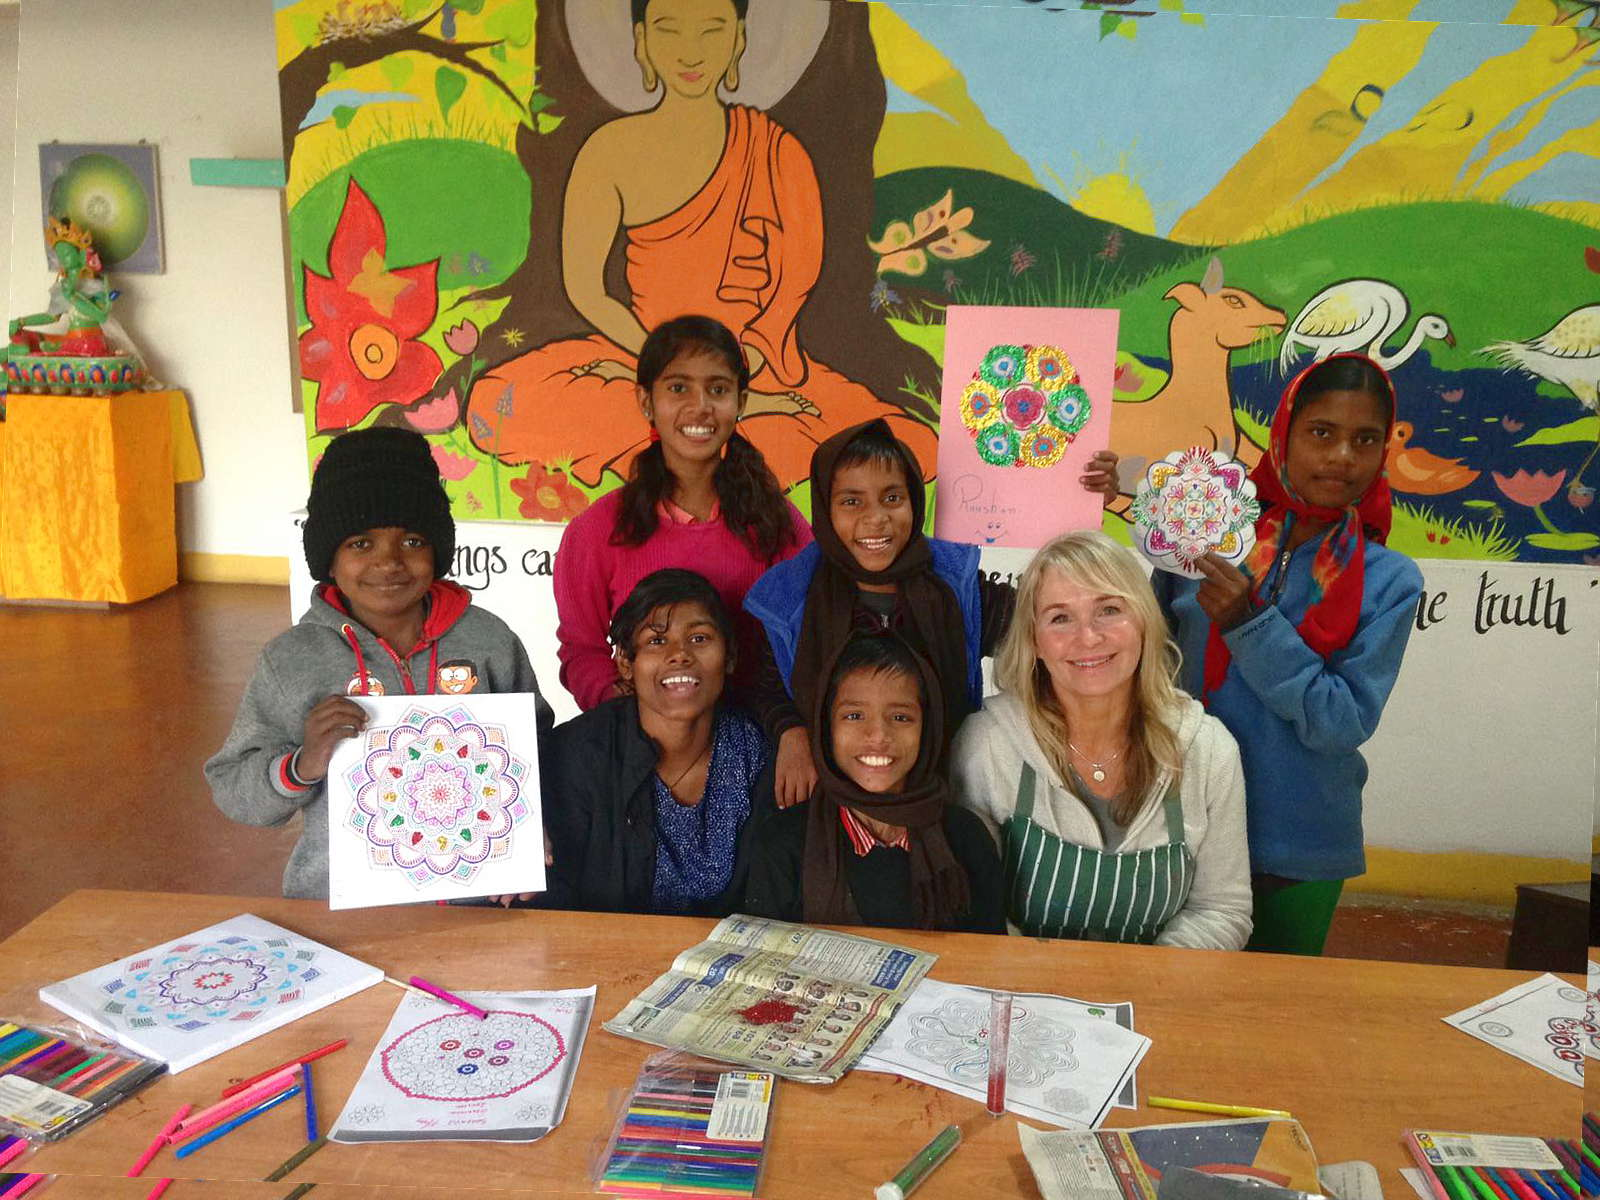 Children, all smiles, with a volunteer art therapist